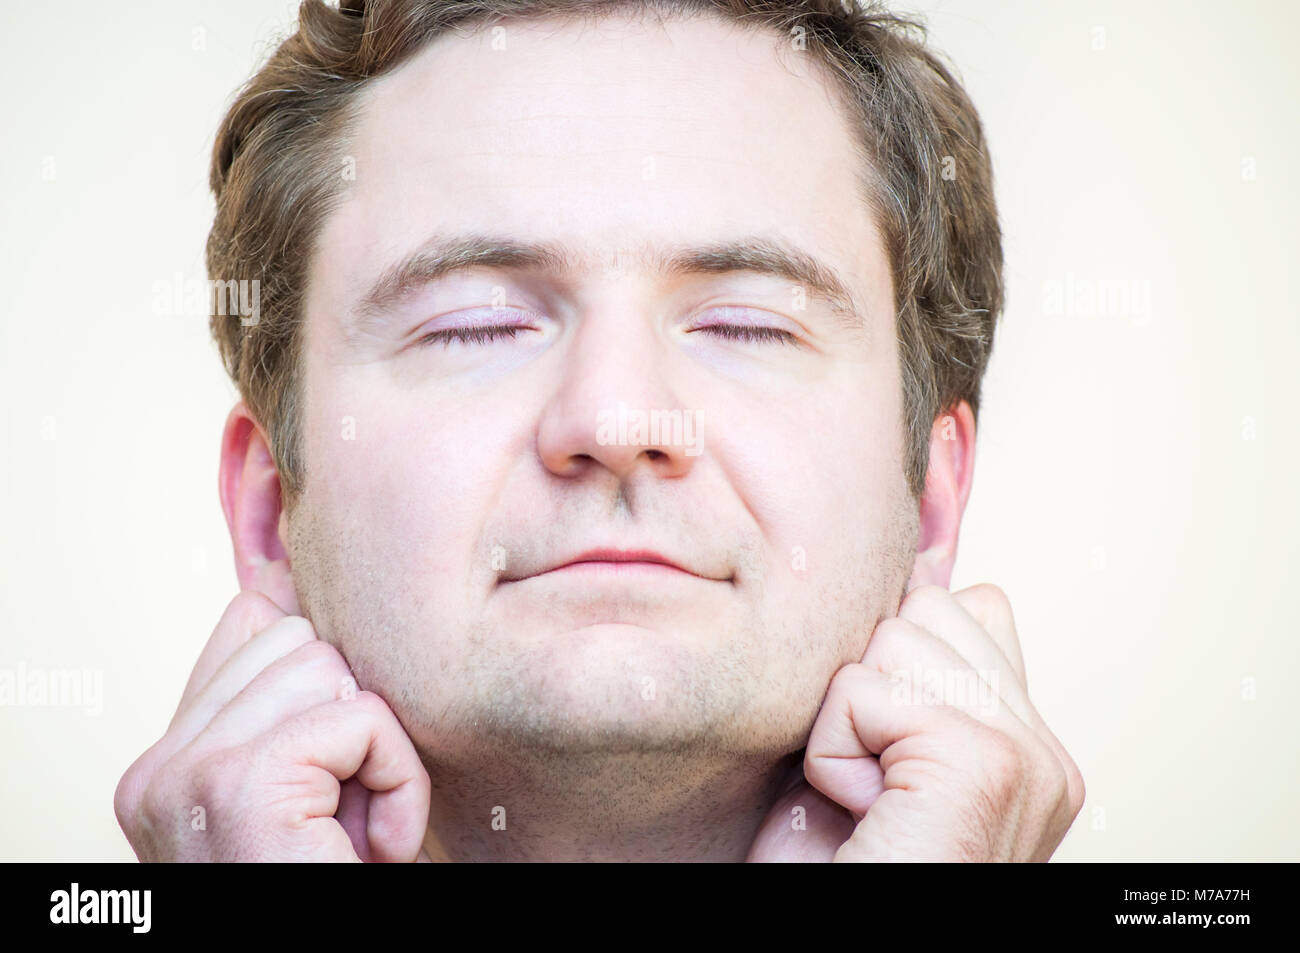 Portrait of young Caucasian Ethnicity tranquil meditating man holding his earlobes on white background. - Stock Image